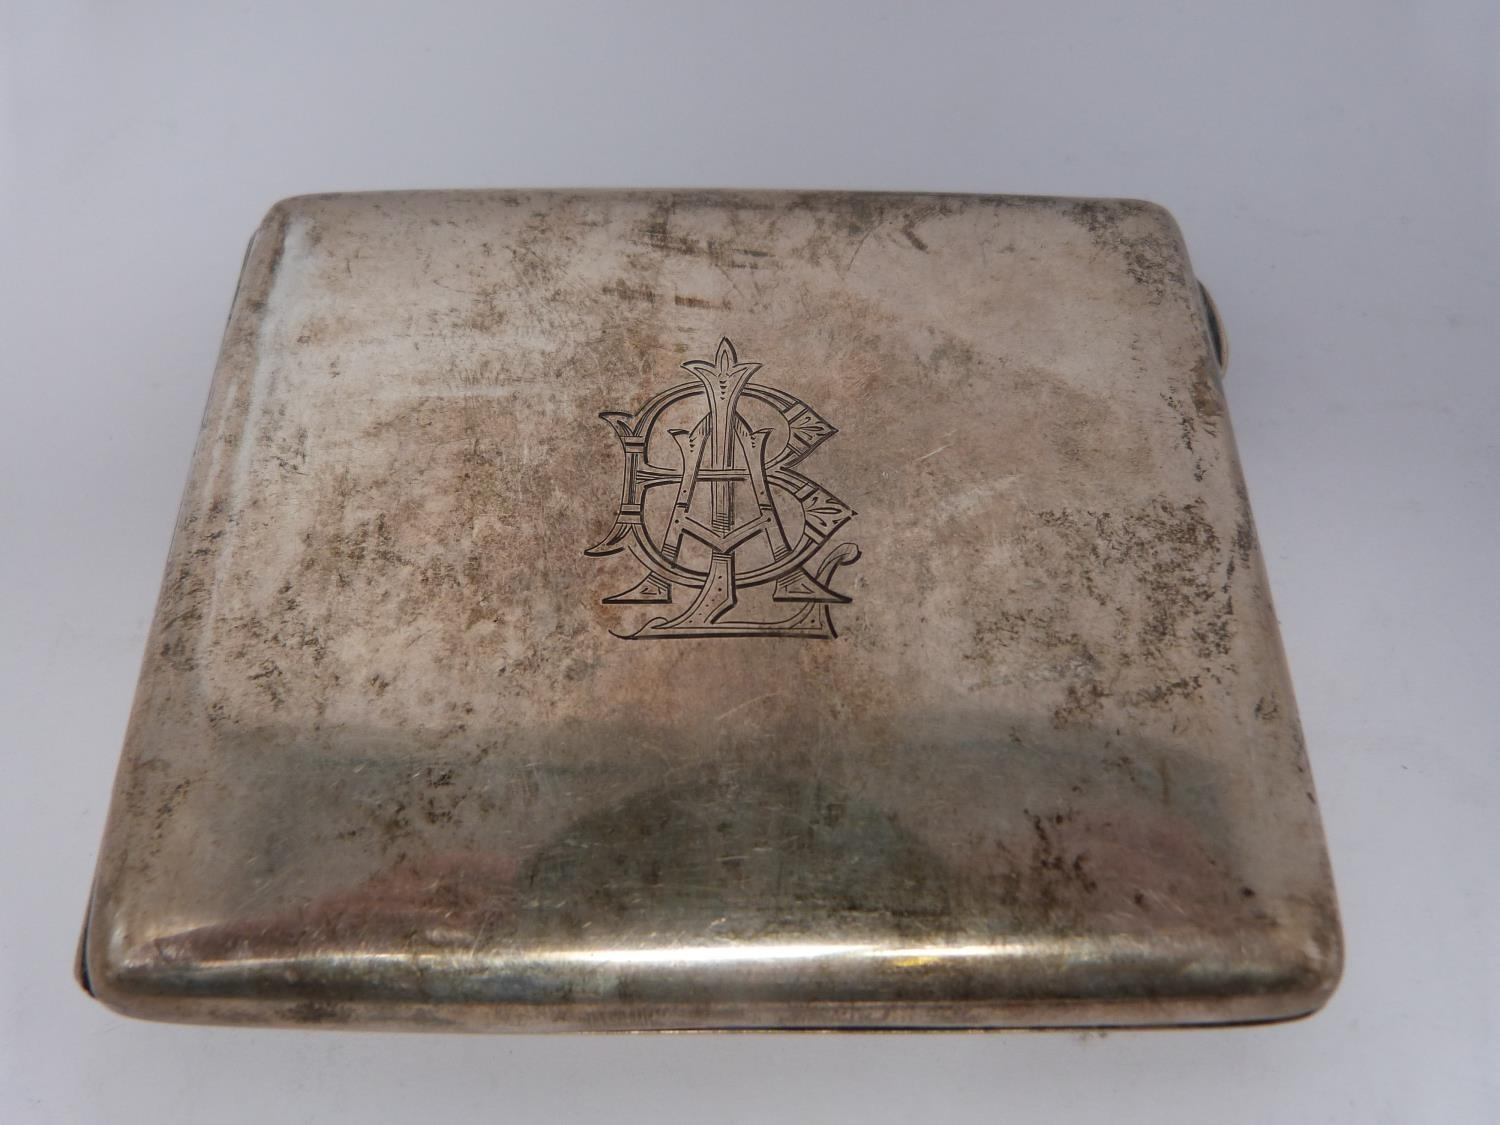 Three monogrammed silver cigarette cases, large case, birmingham 1920, Charles S Green & Co Ltd. - Image 8 of 10